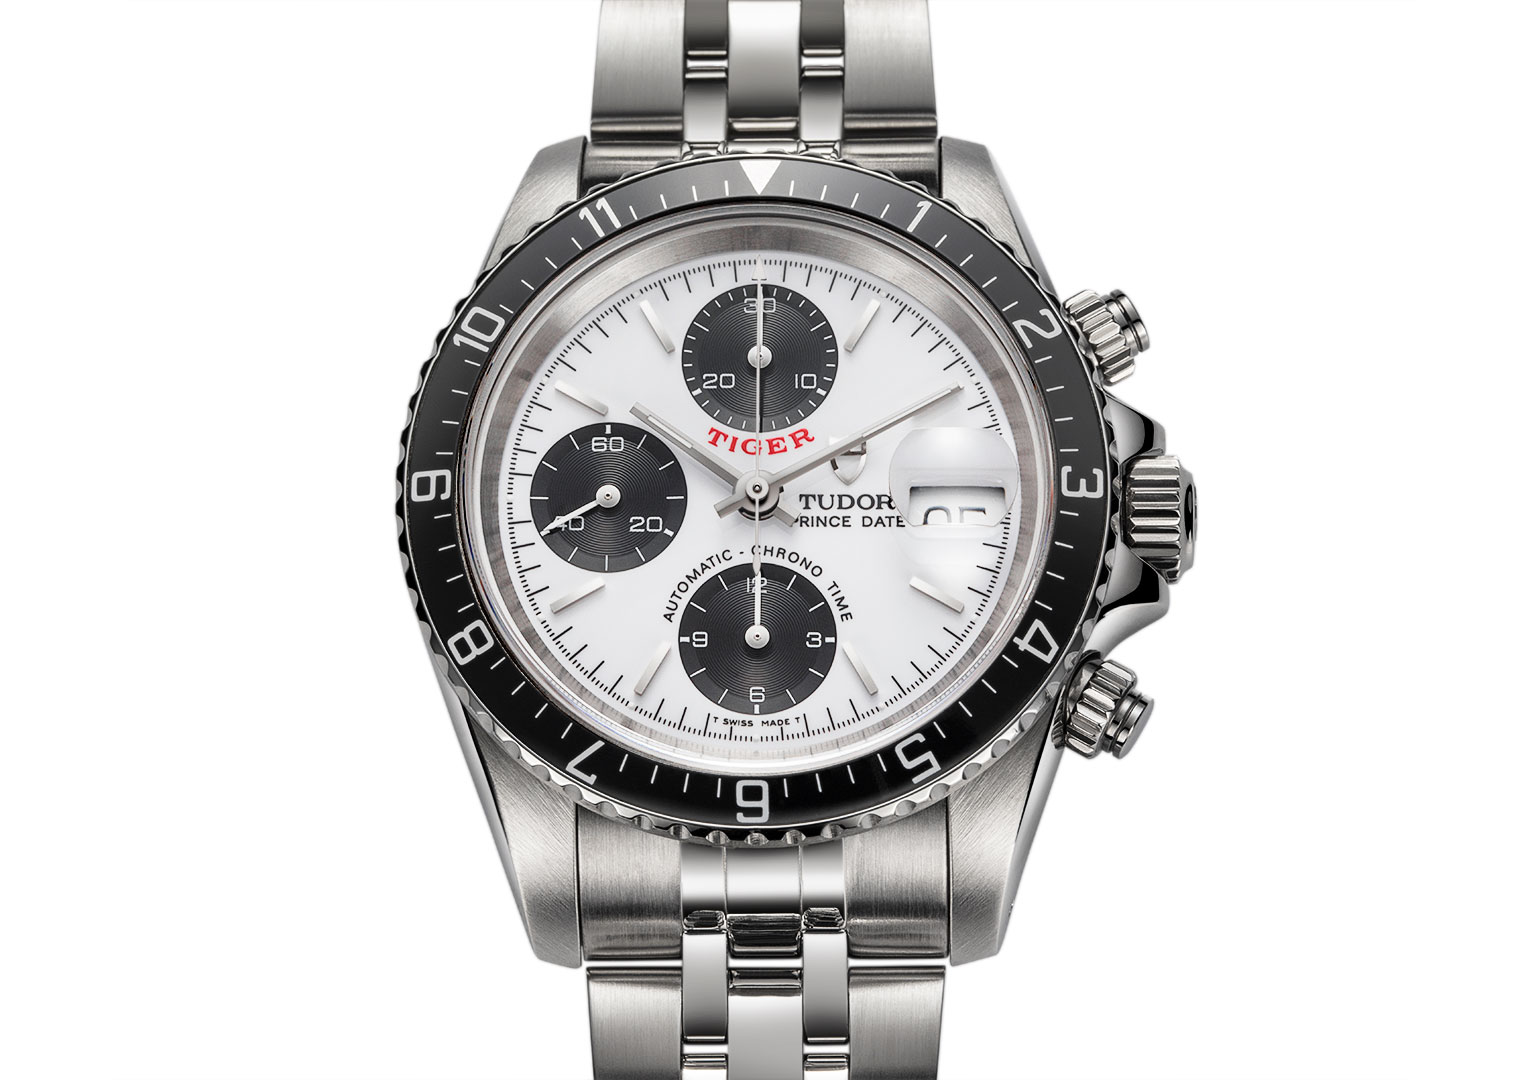 The Tudor Prince Oysterdate Chronograph at £5,000 is more than four times cheaper than the Rolex alternative: the Daytona